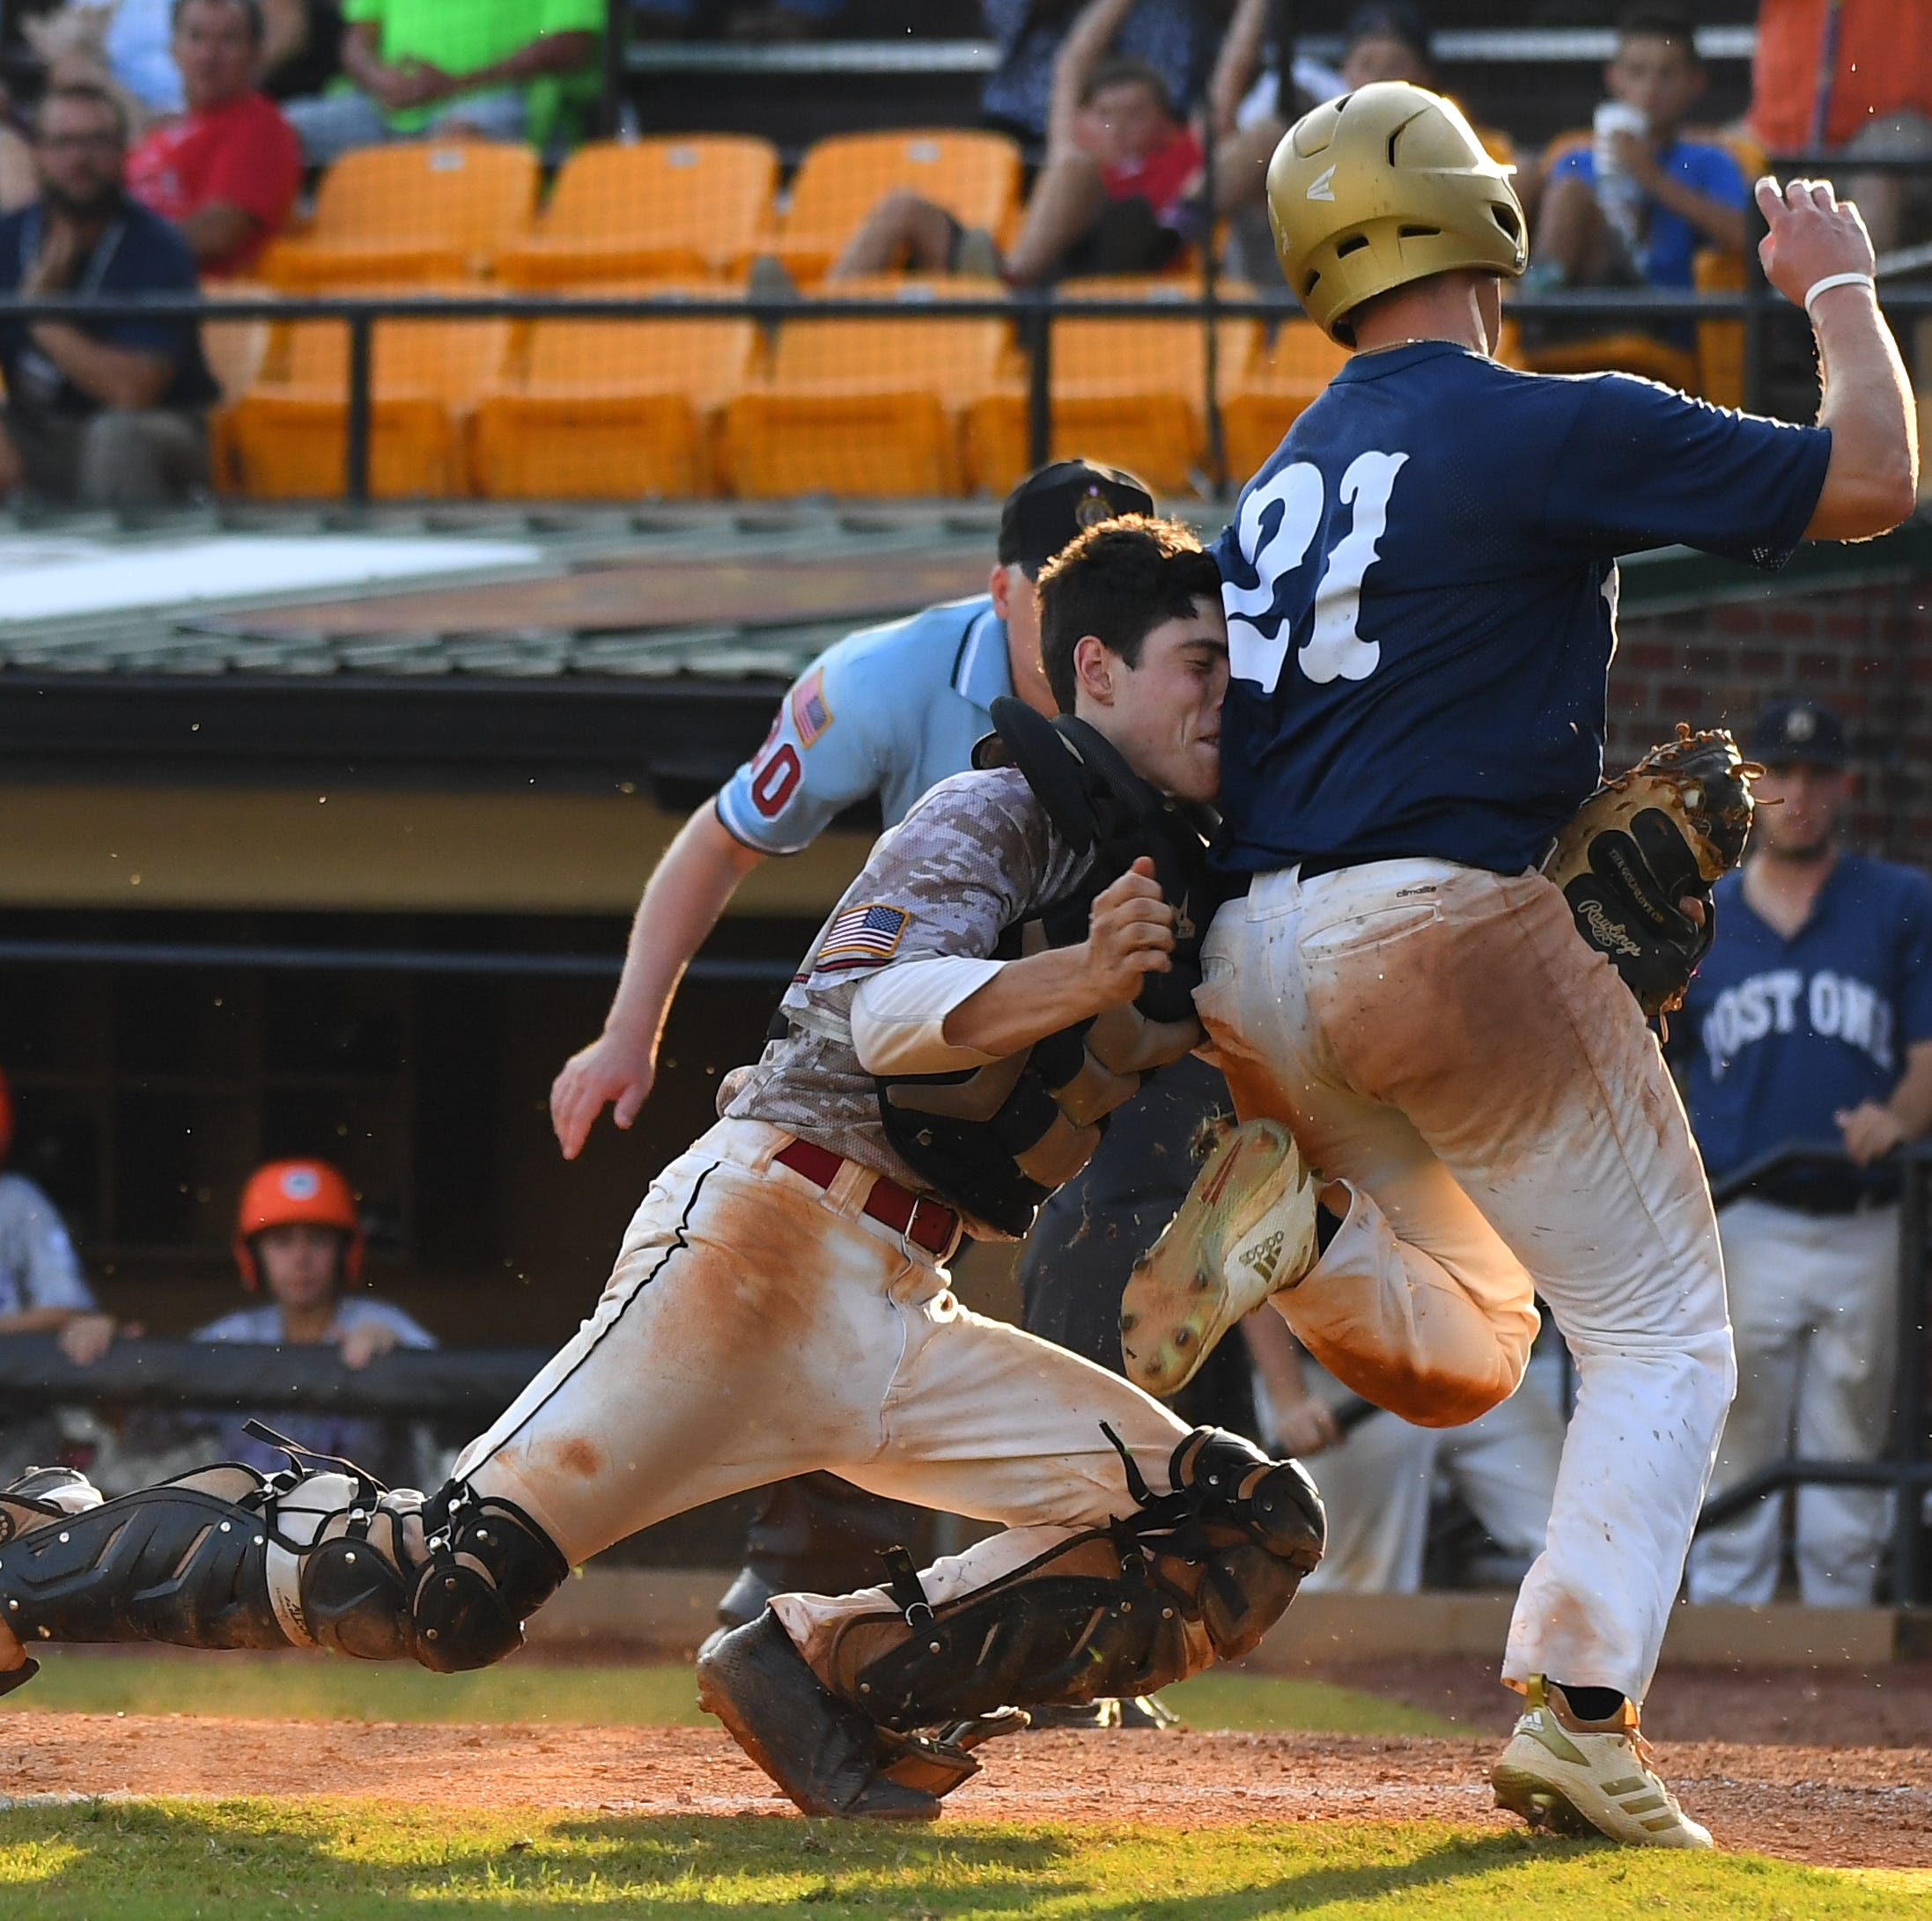 Post One prevails in 10 innings to reach American Legion World Series final